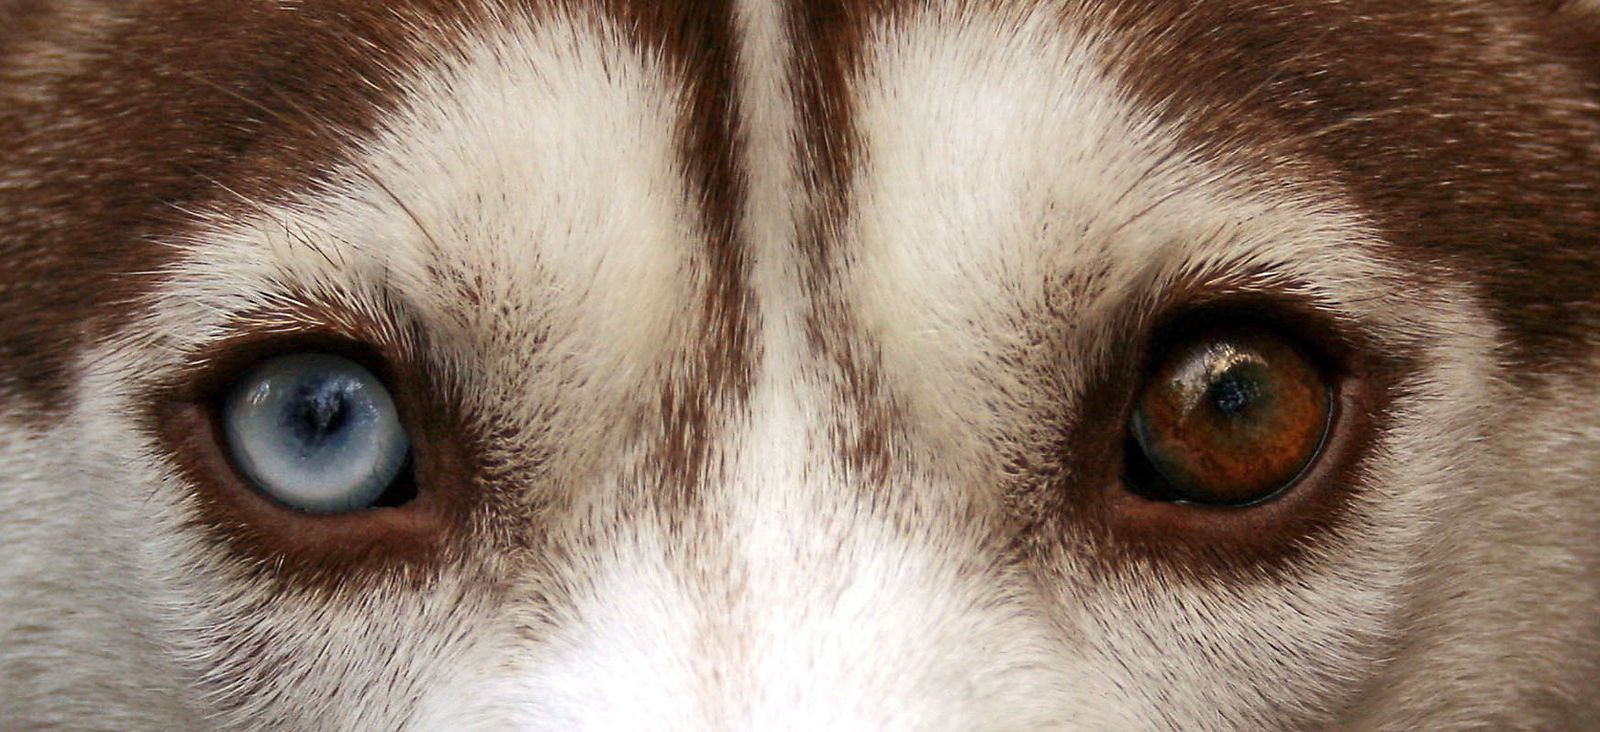 Home Page Of Petchester Veterinary Husky Eyes Siberian Husky Husky